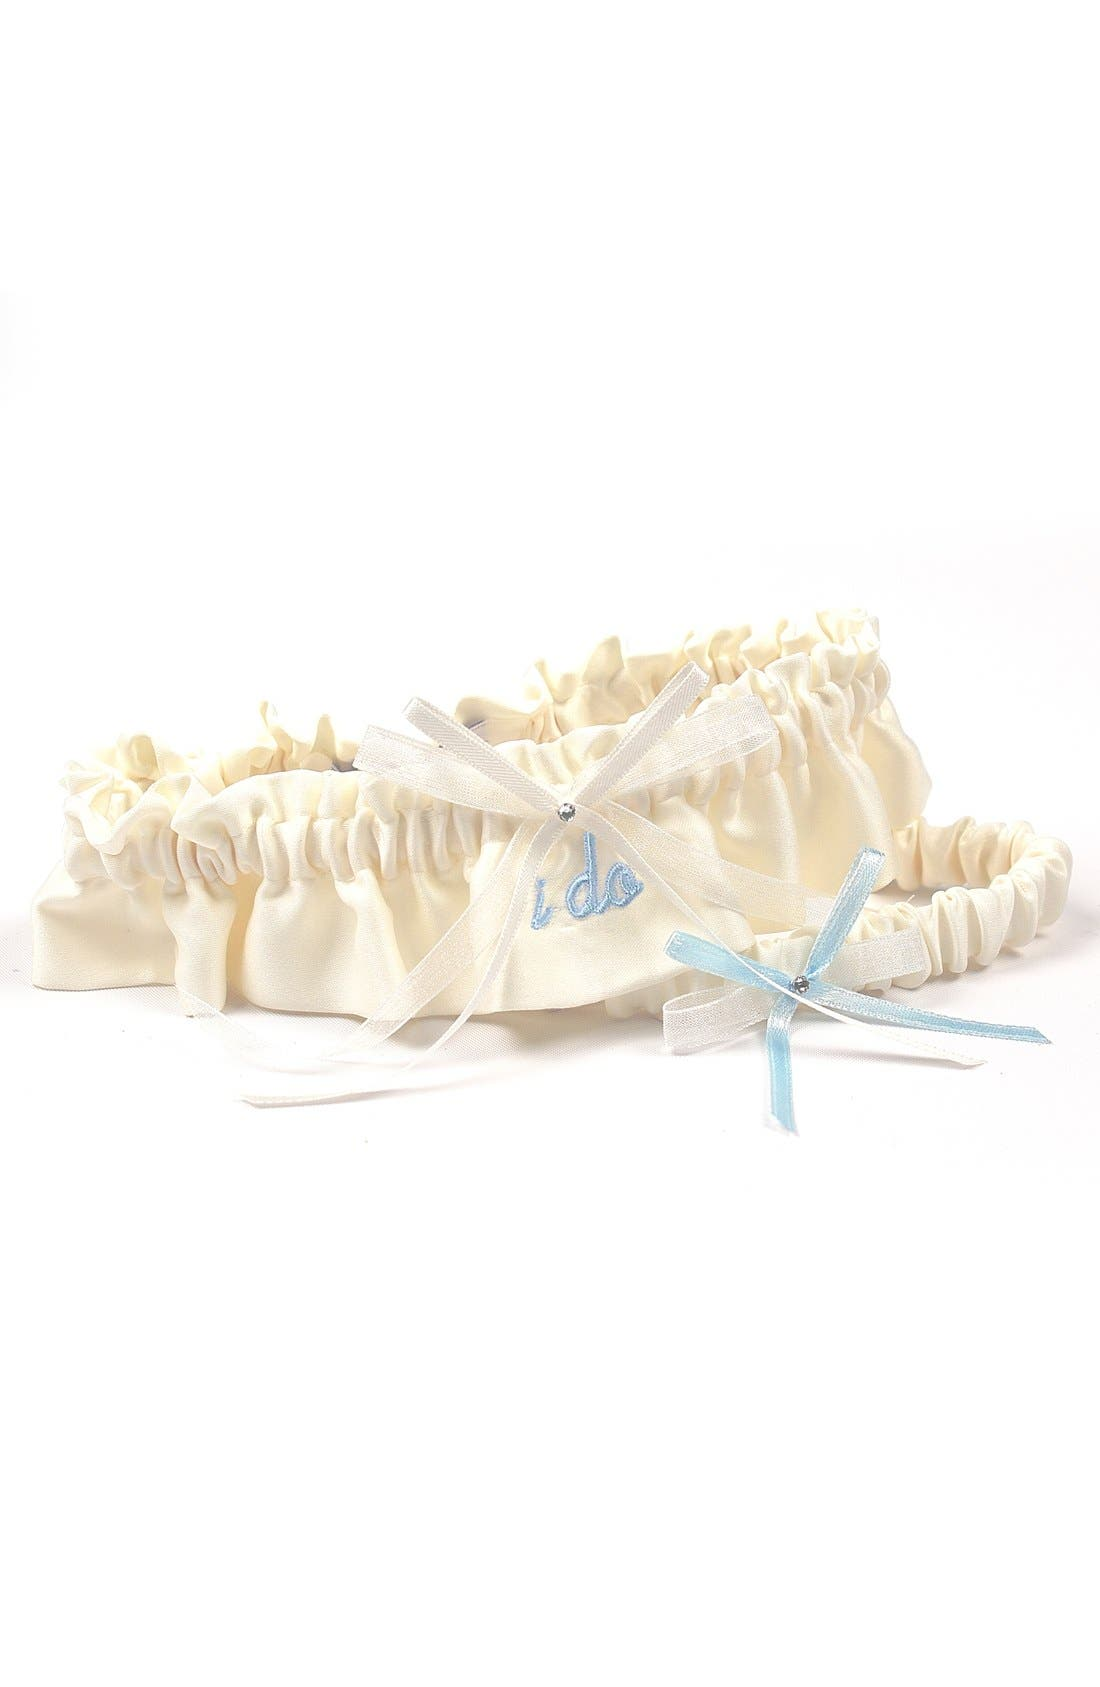 Main Image - Cathy's Concepts 'I Do' Embroidered Garter